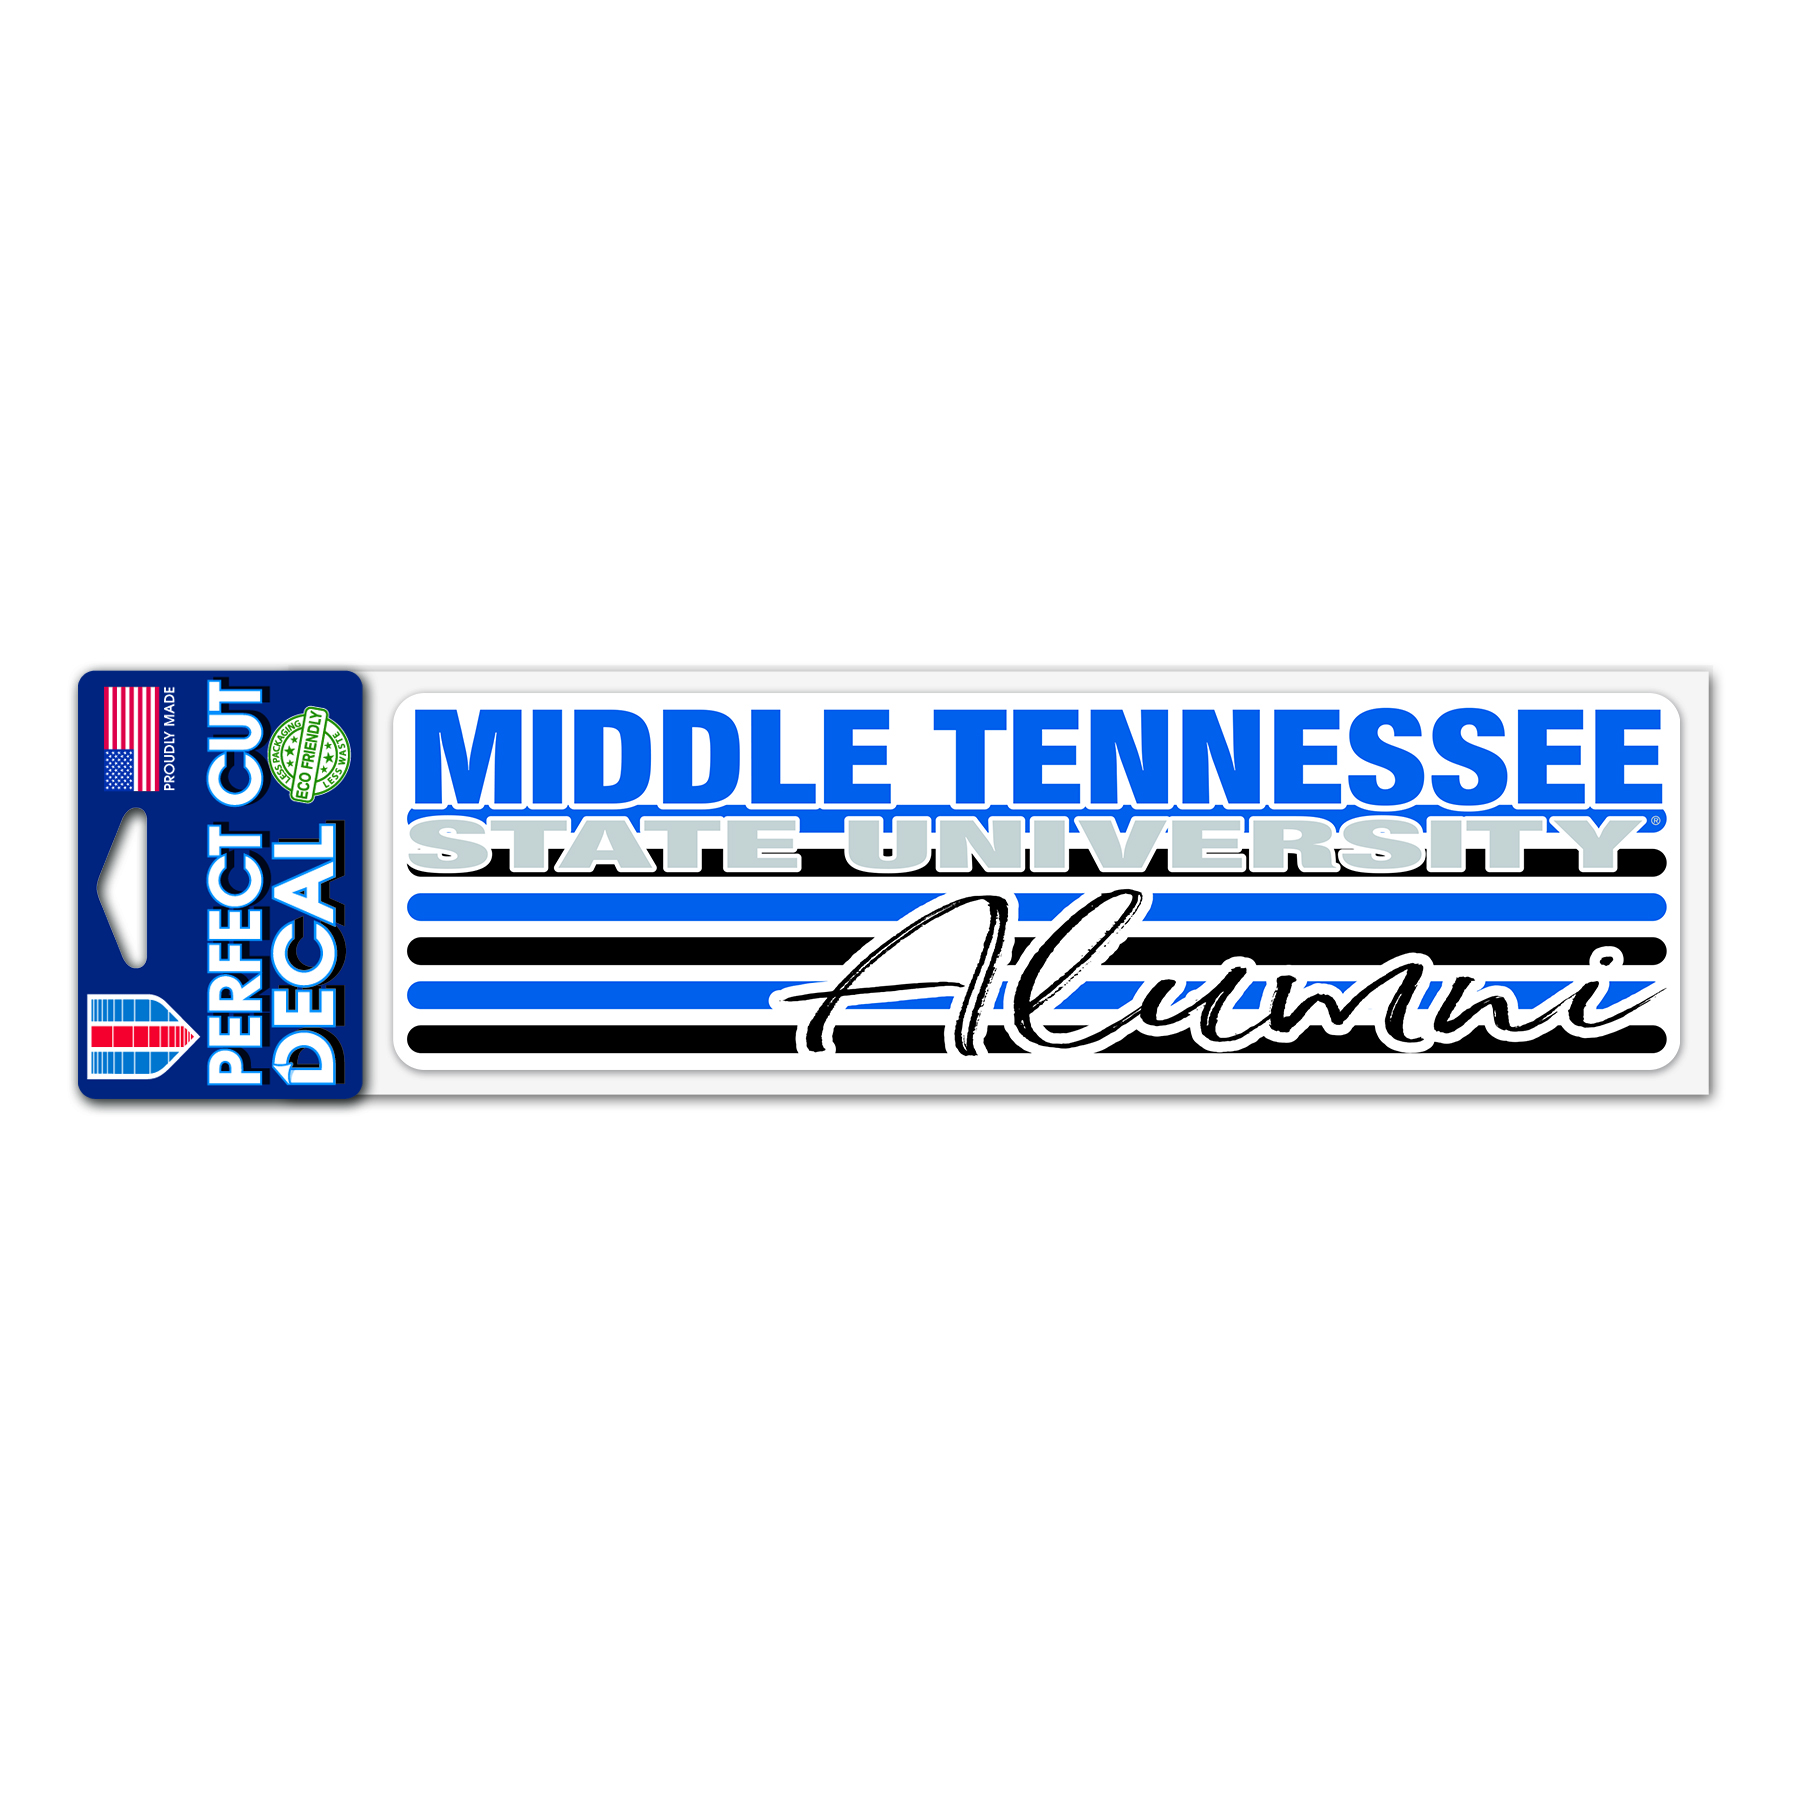 Middle Tennessee Alumni 3x10 Perfect Cut Decal